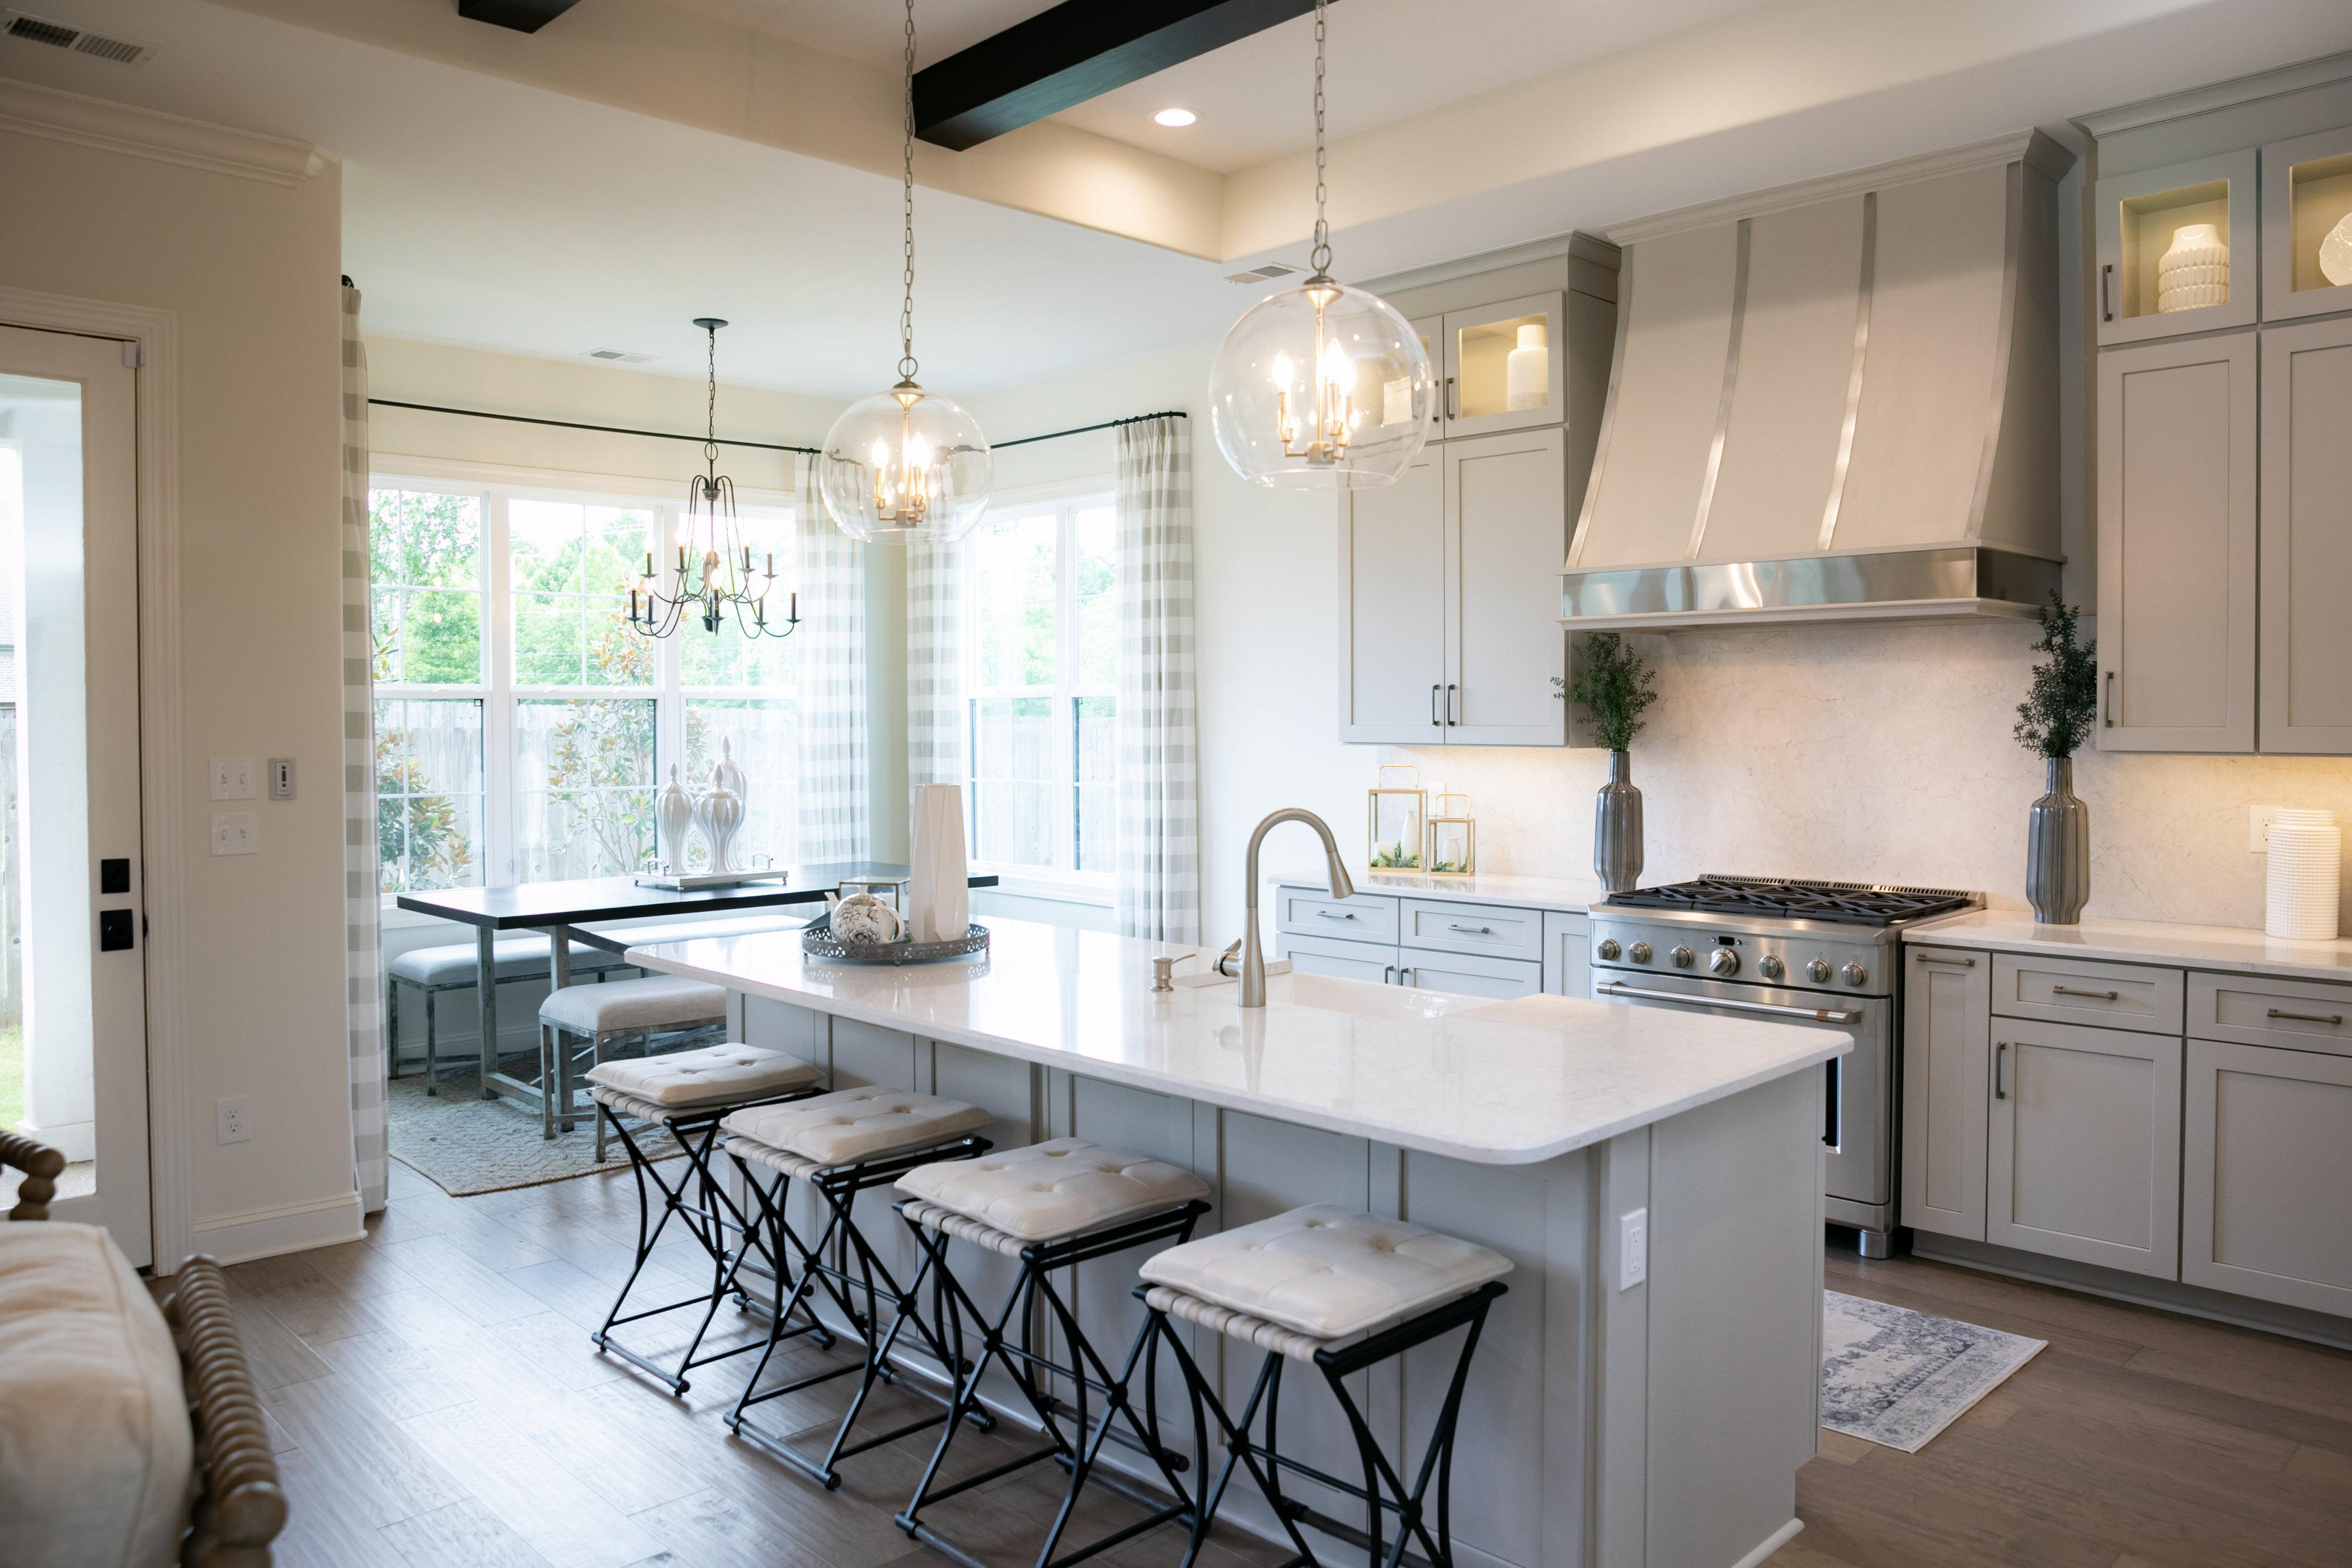 Kitchen featured in the Riverside By Regency Homebuilders in Memphis, TN